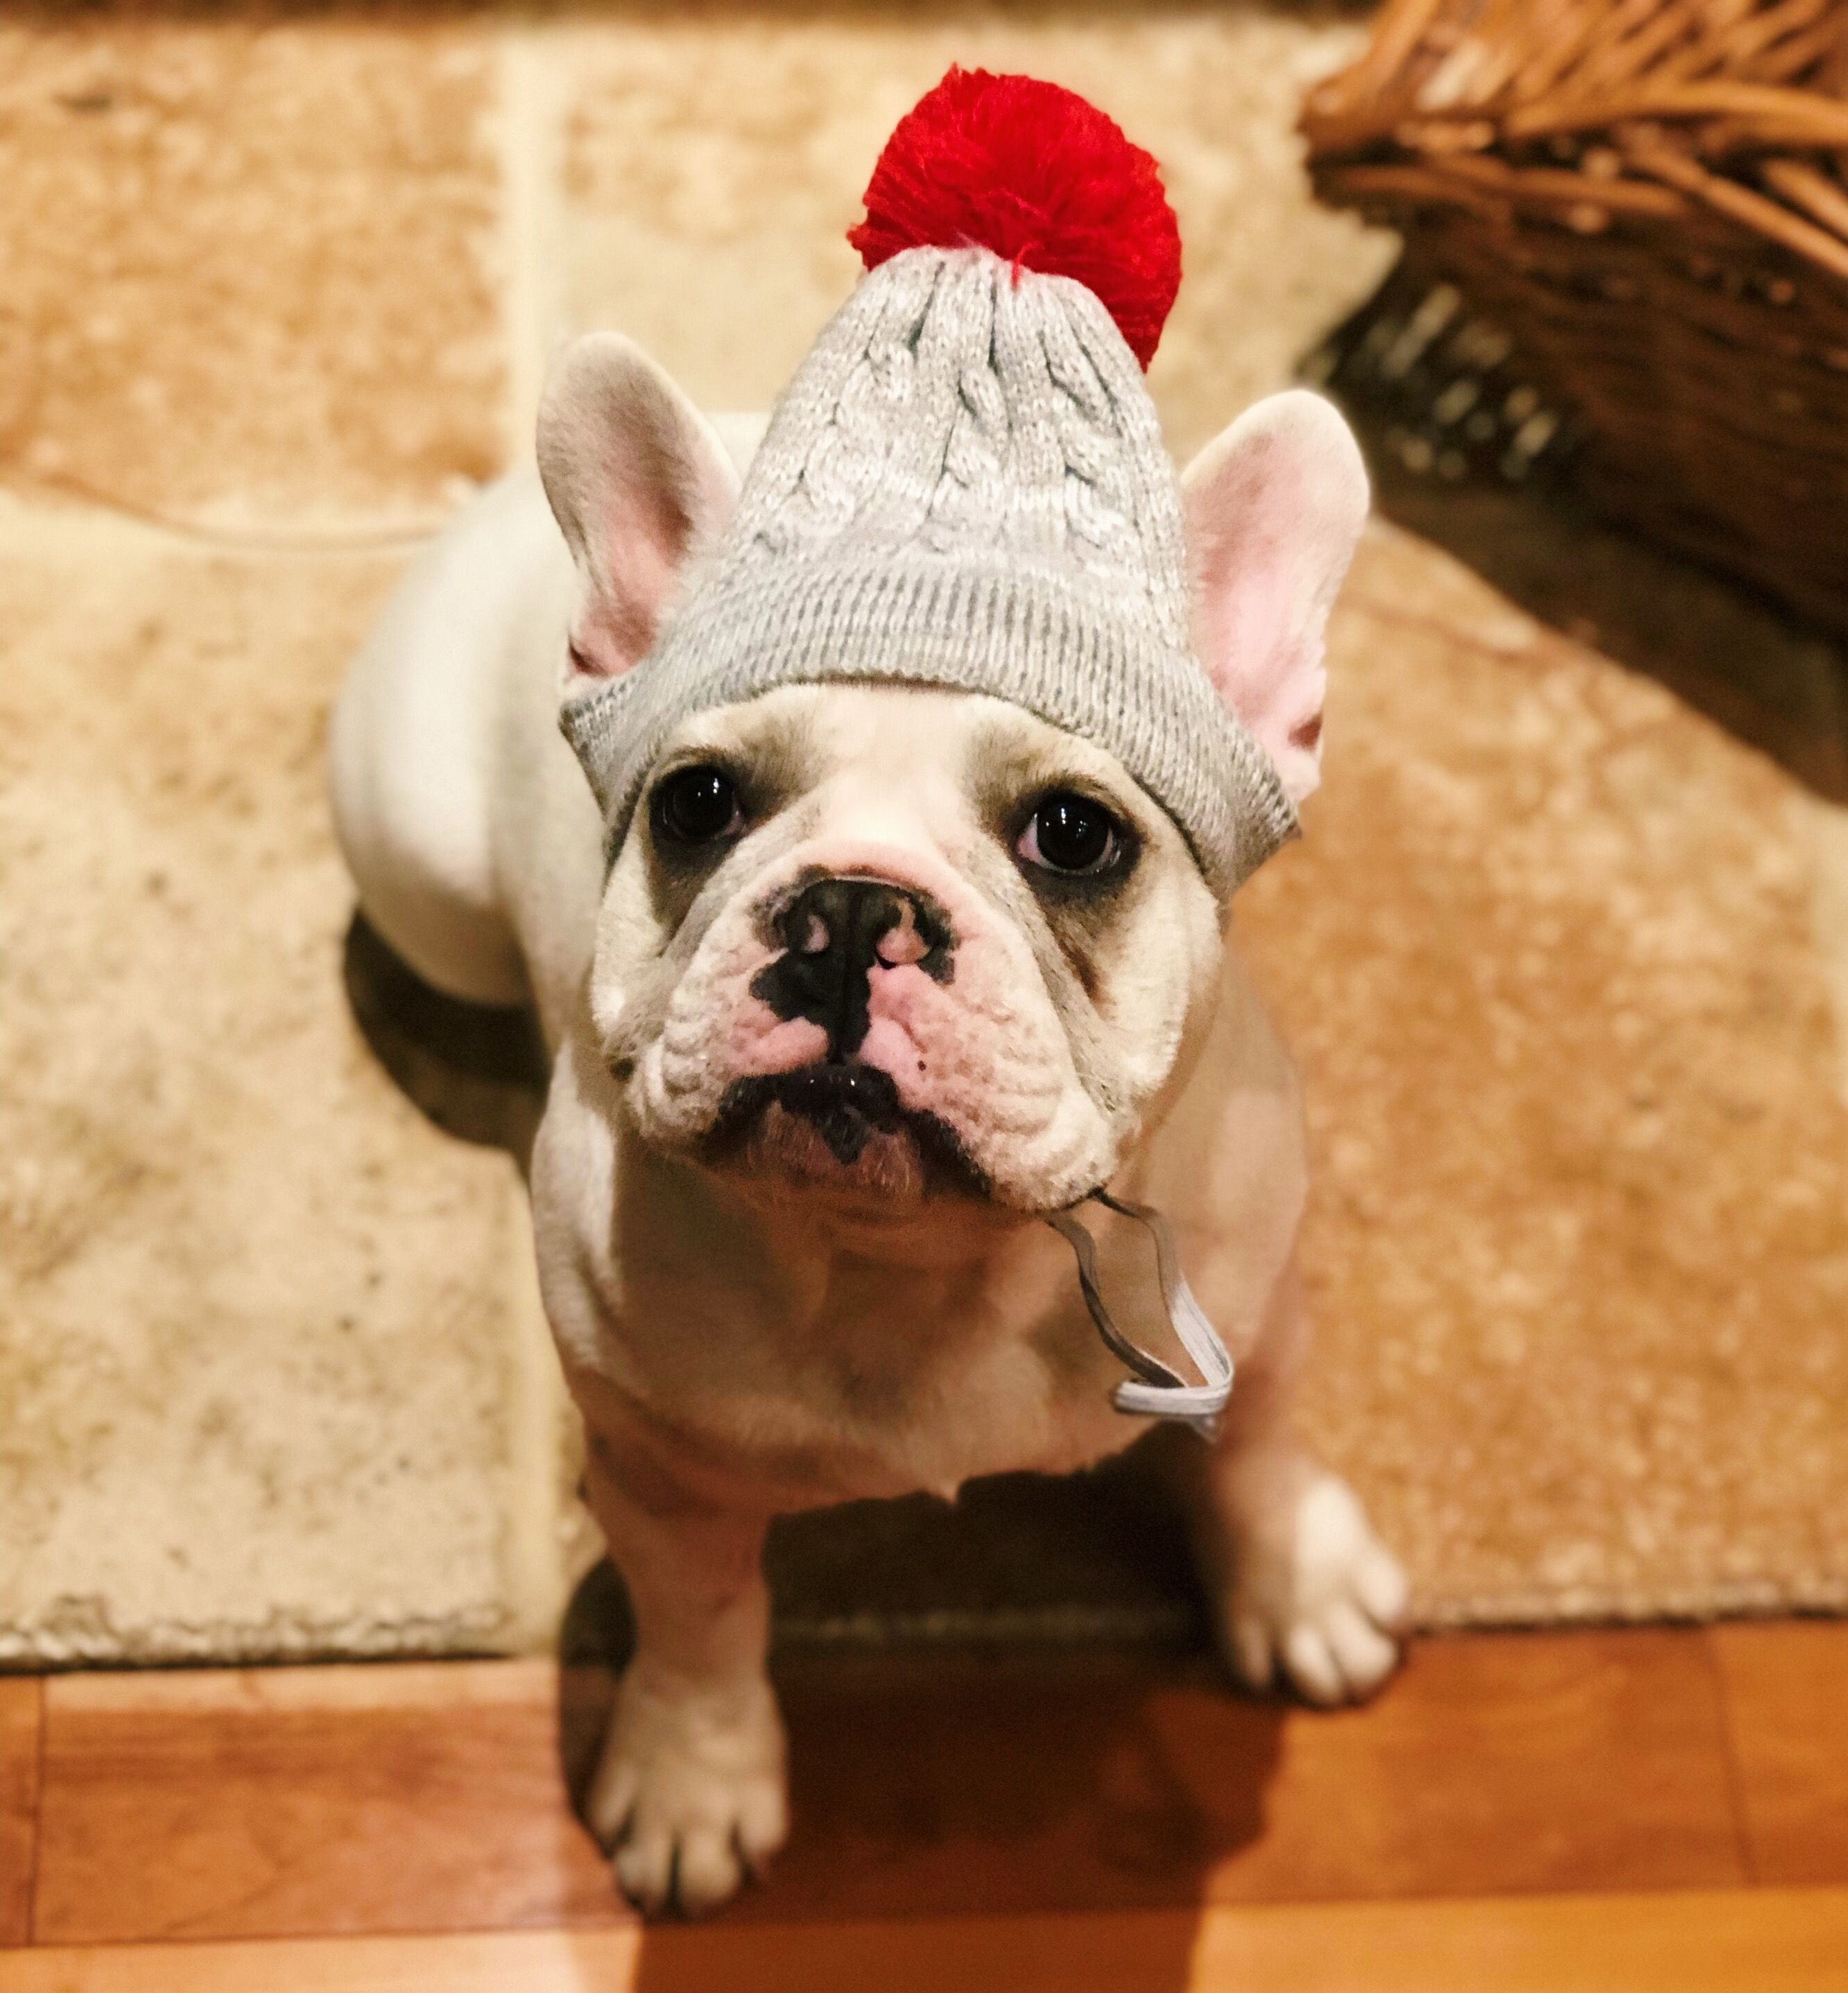 Pin By Teri L On Frenchie Fun French Bulldog Animals Dogs